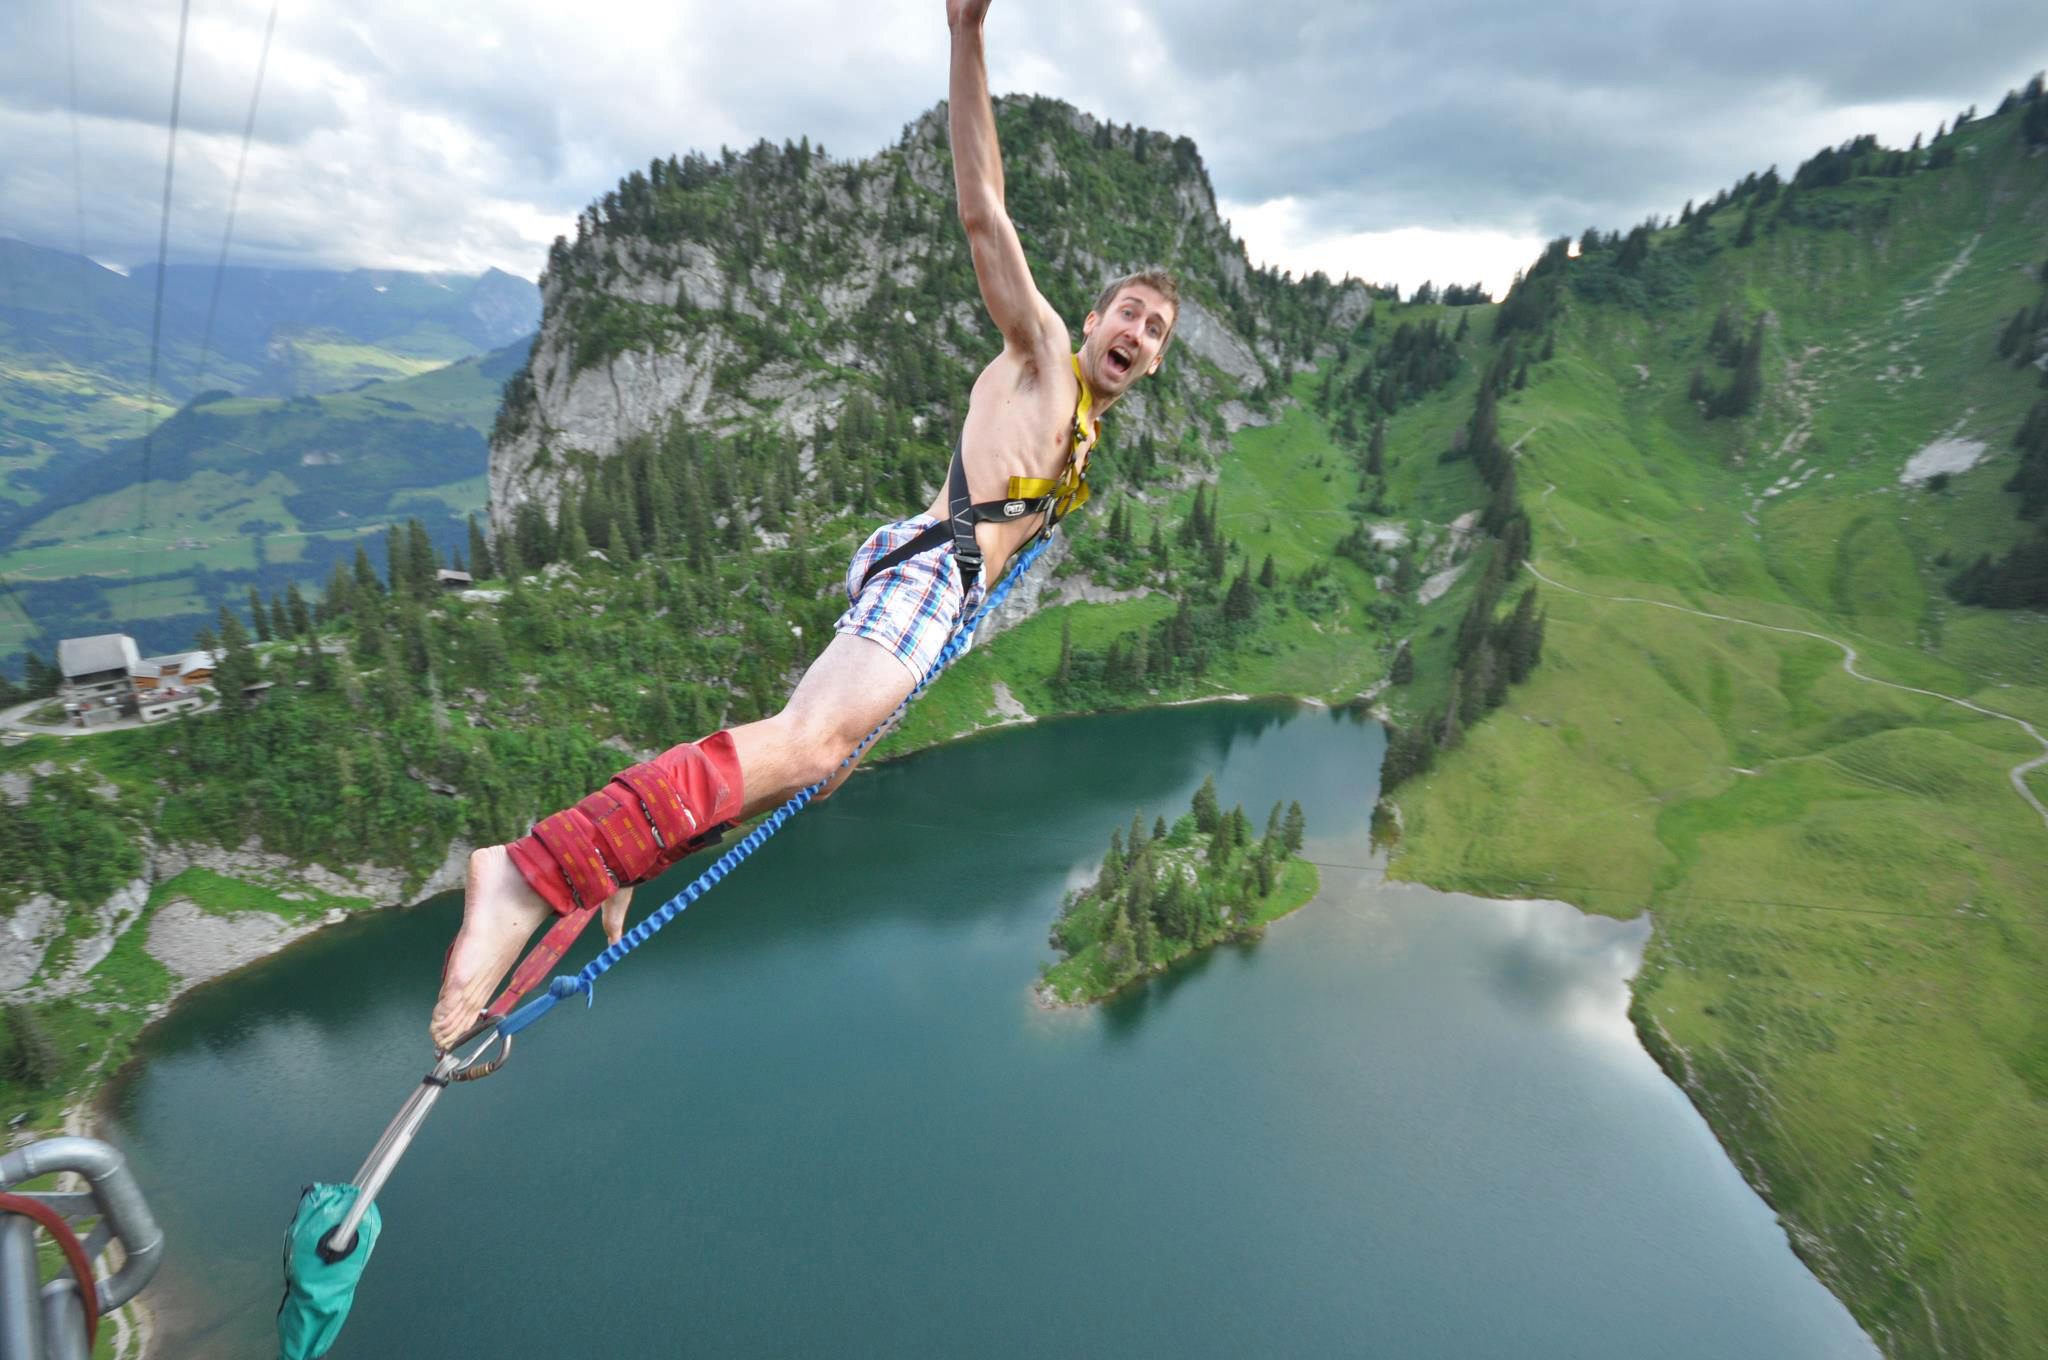 The World's Best Bungee Jumping